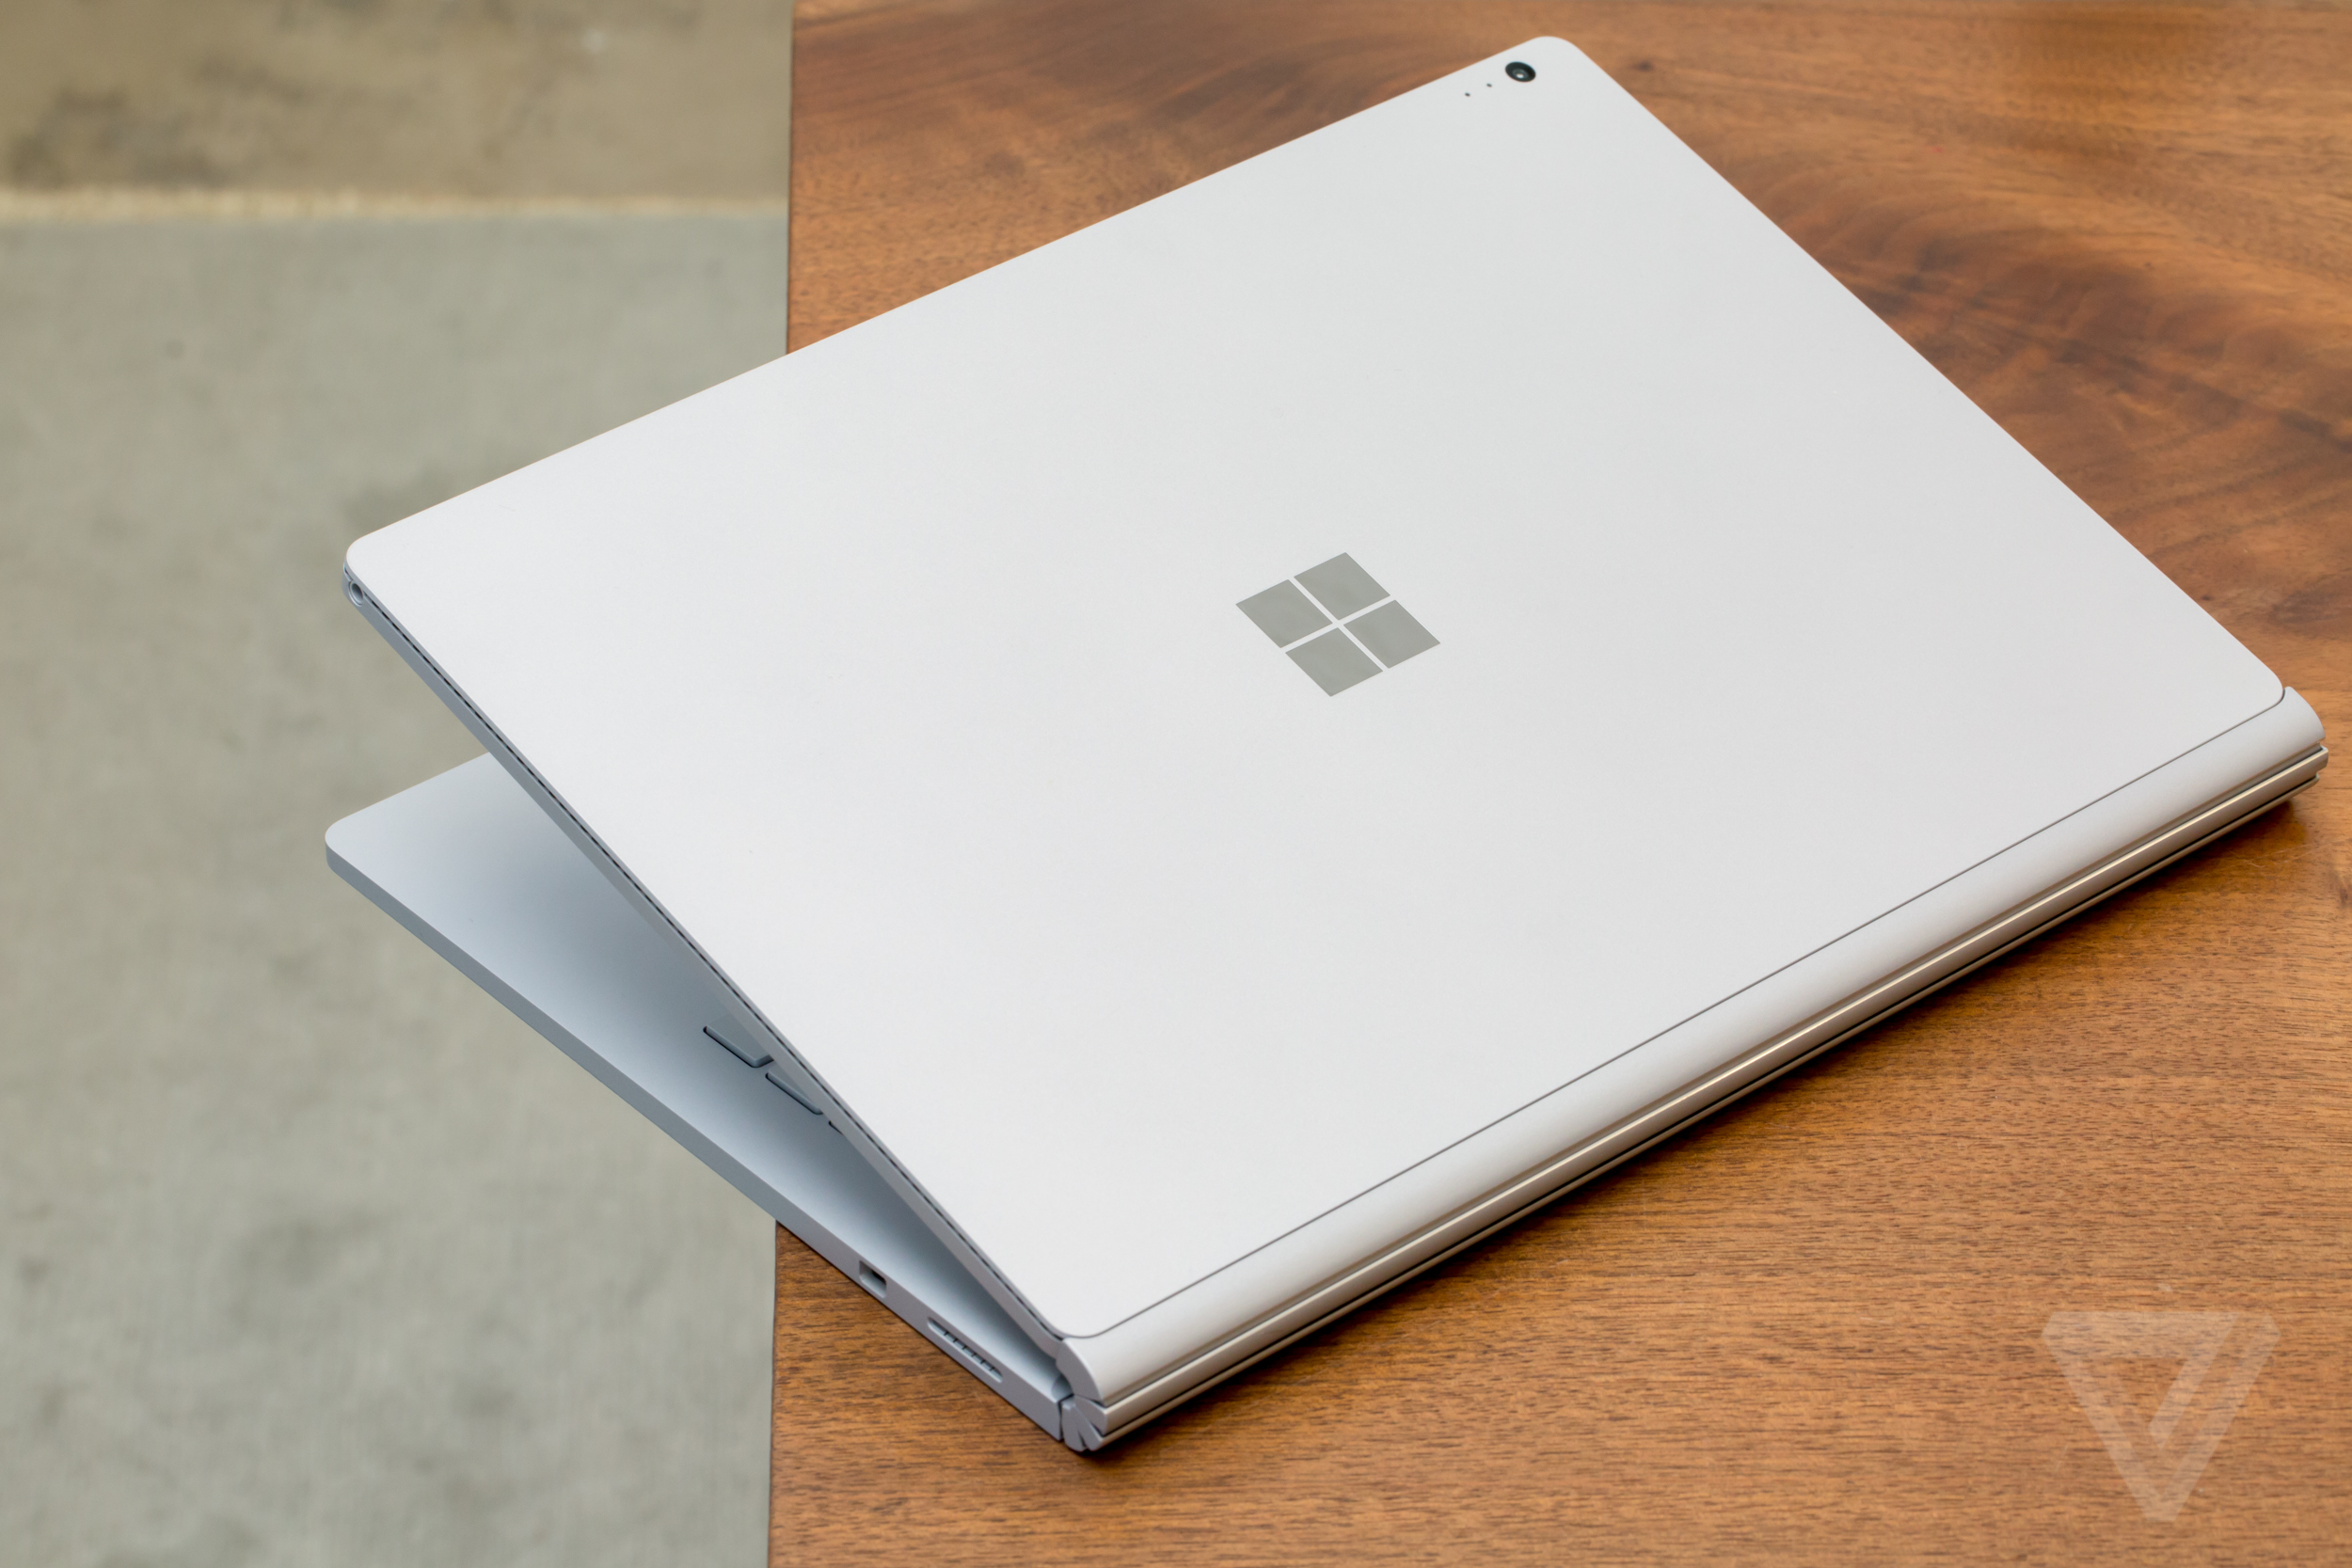 Microsoft Surface Pro 5 Rumored Specifications and Release Date